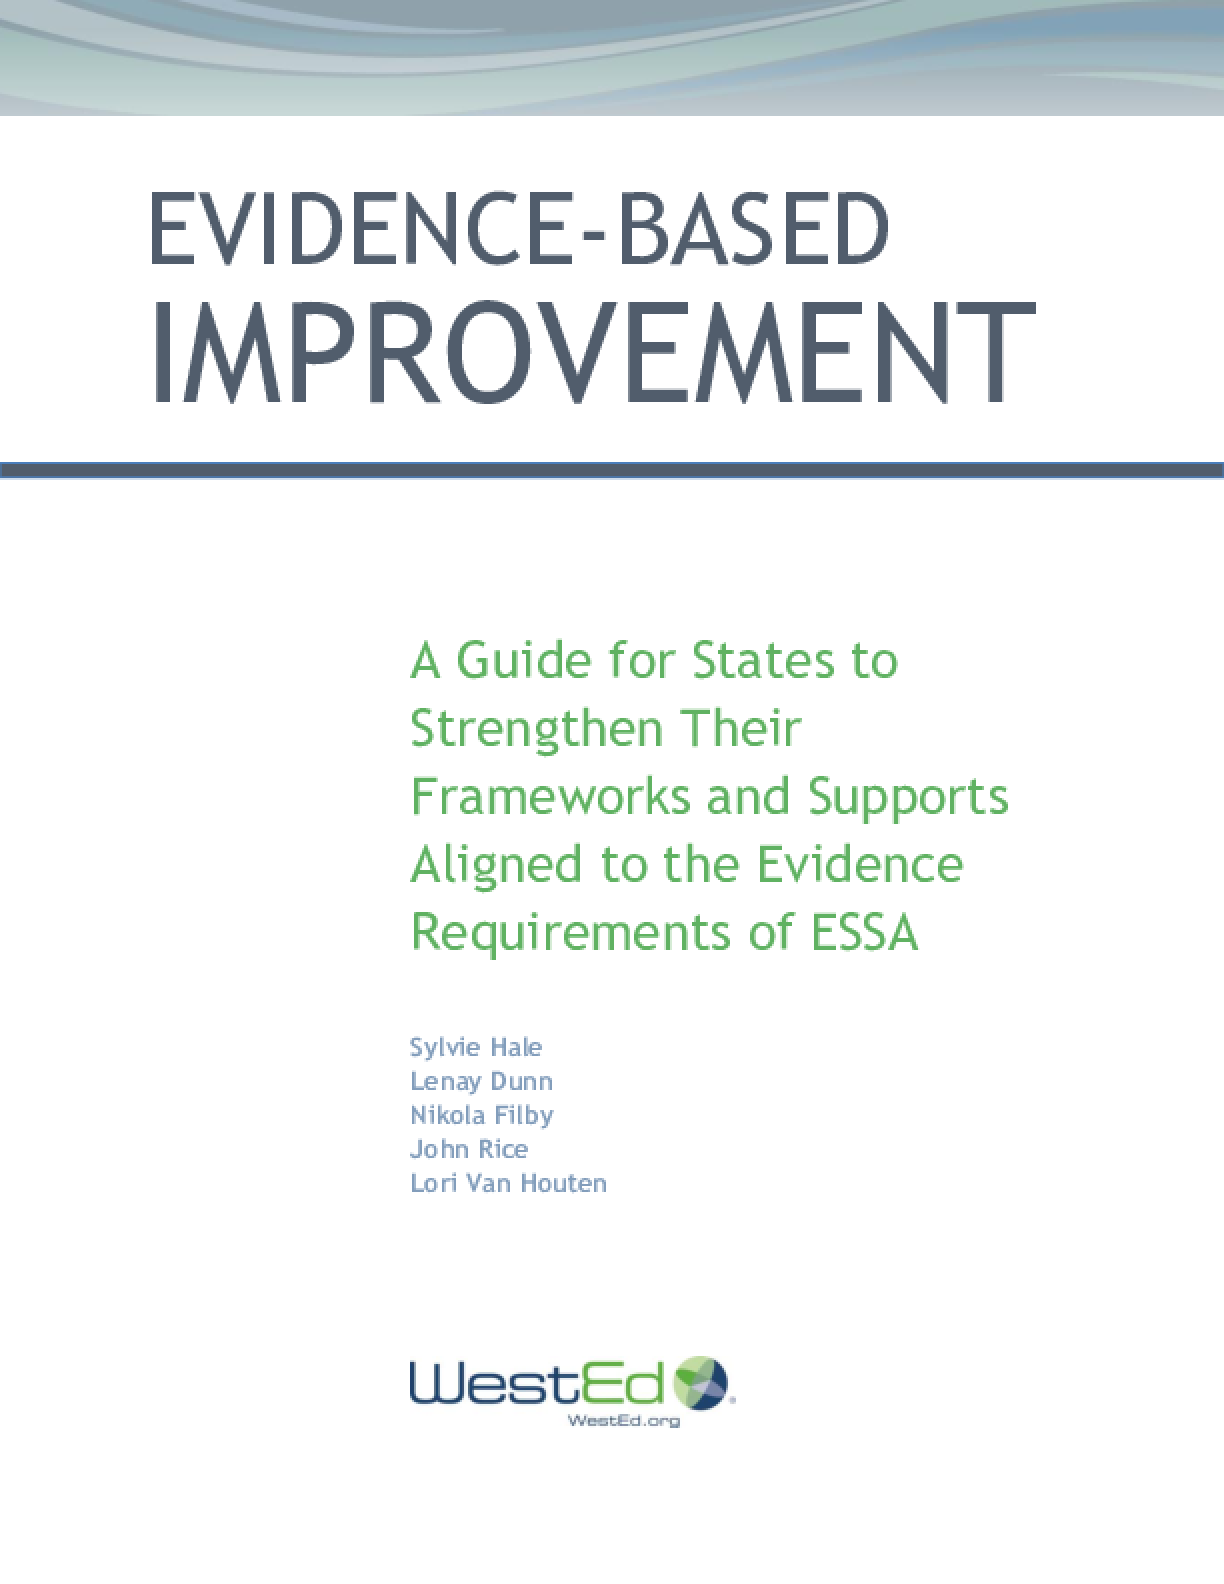 Evidence-Based Improvement: A Guide for States to Strengthen Their Frameworks and Supports Aligned to the Evidence Requirements of ESSA